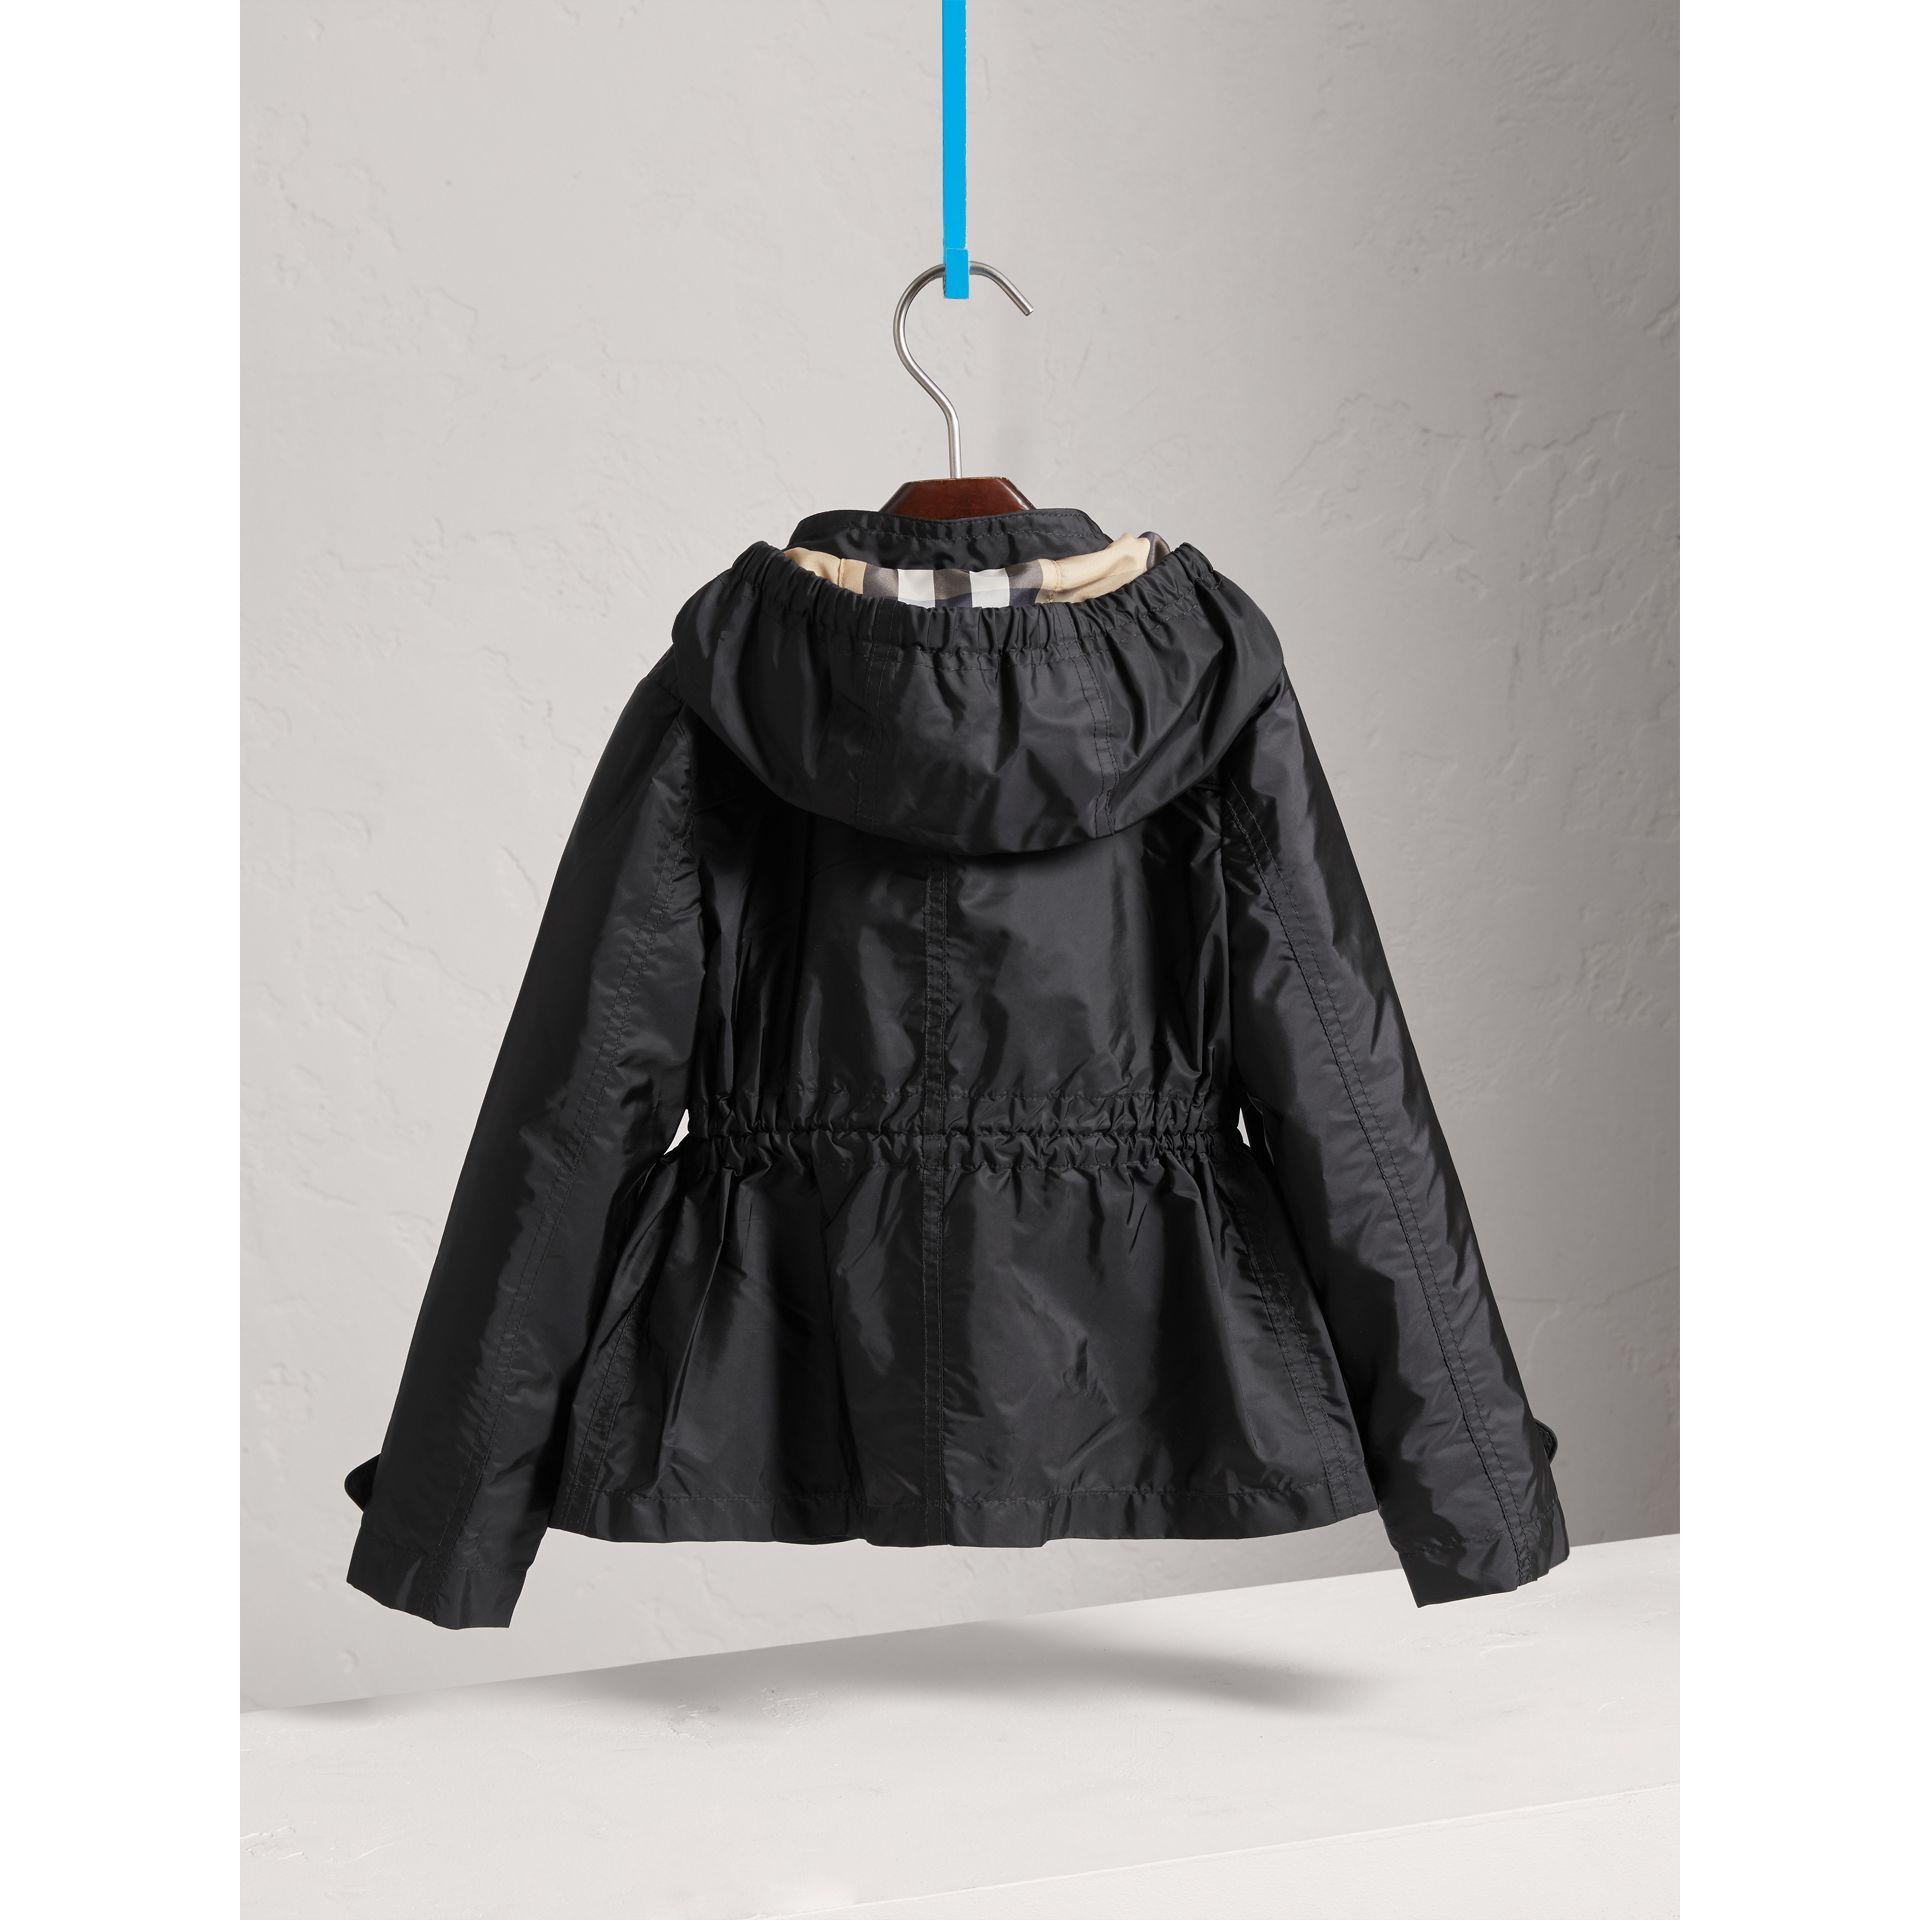 Veste à capuche repliable en tissu technique (Noir) - Fille | Burberry - photo de la galerie 3